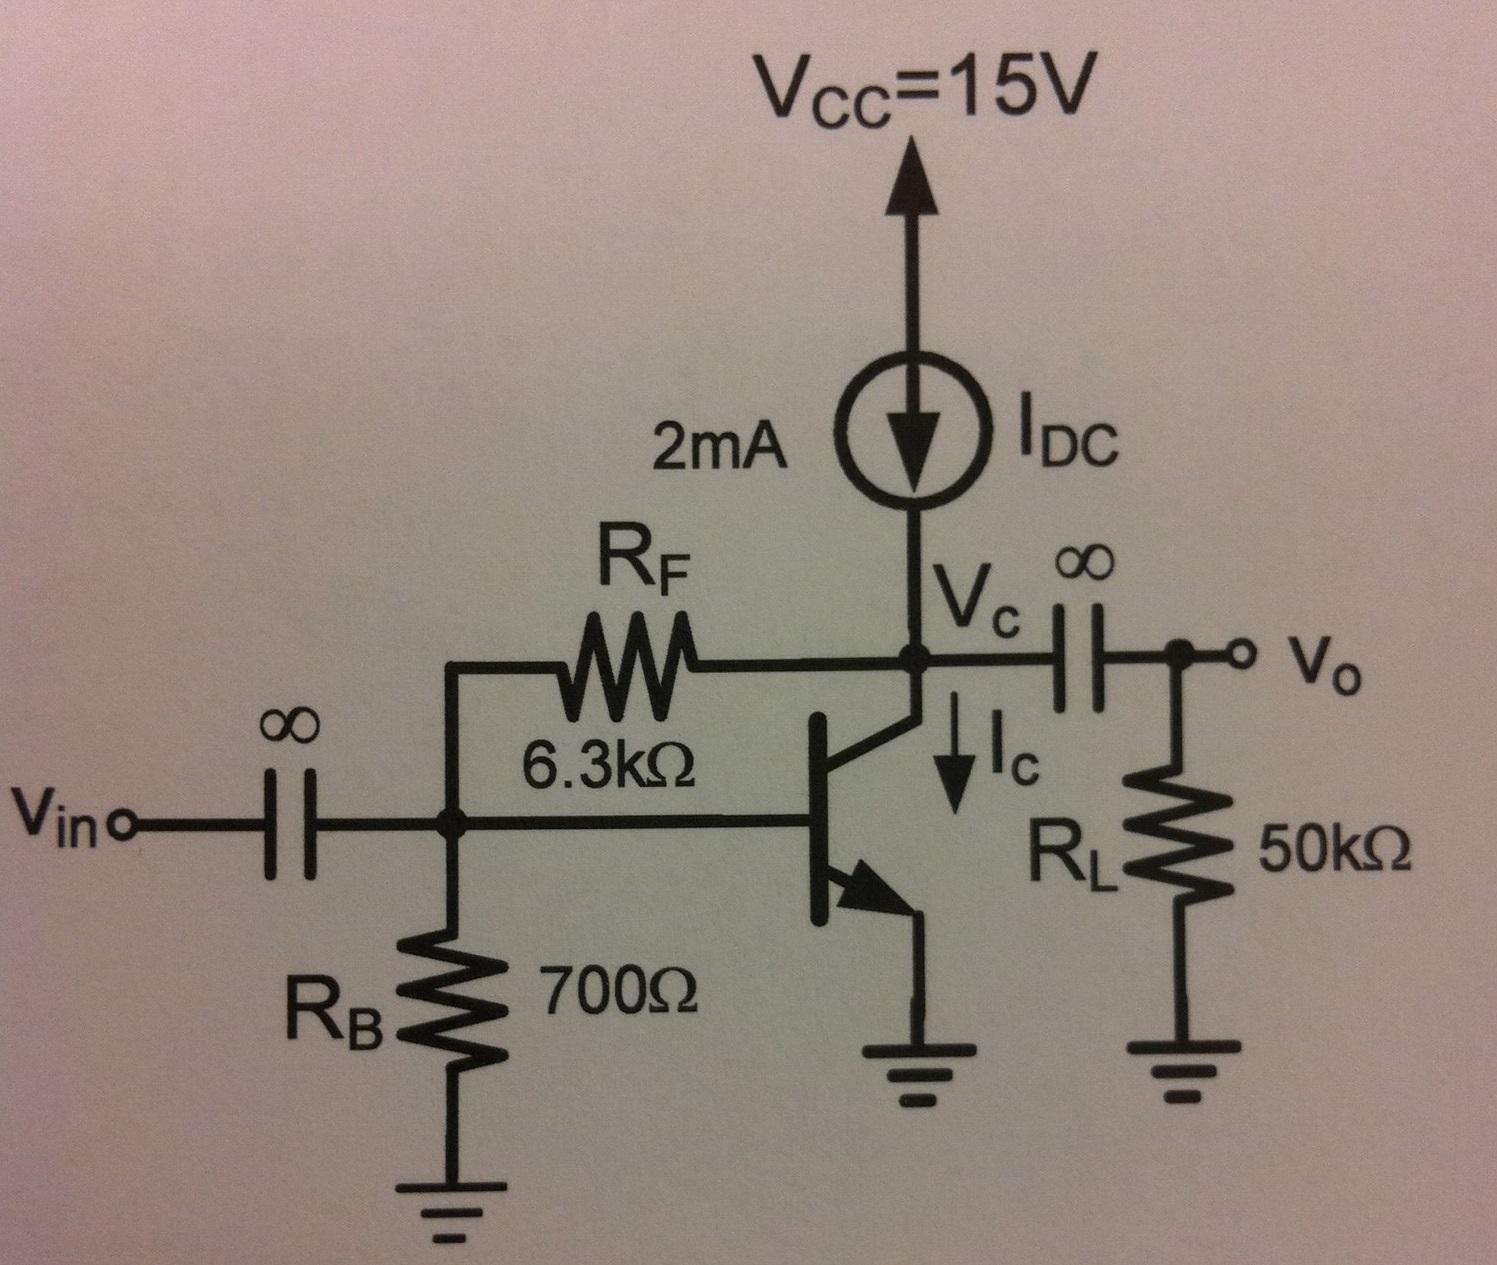 For the circuit shown, I_DC is ideal. Assume V_BEo